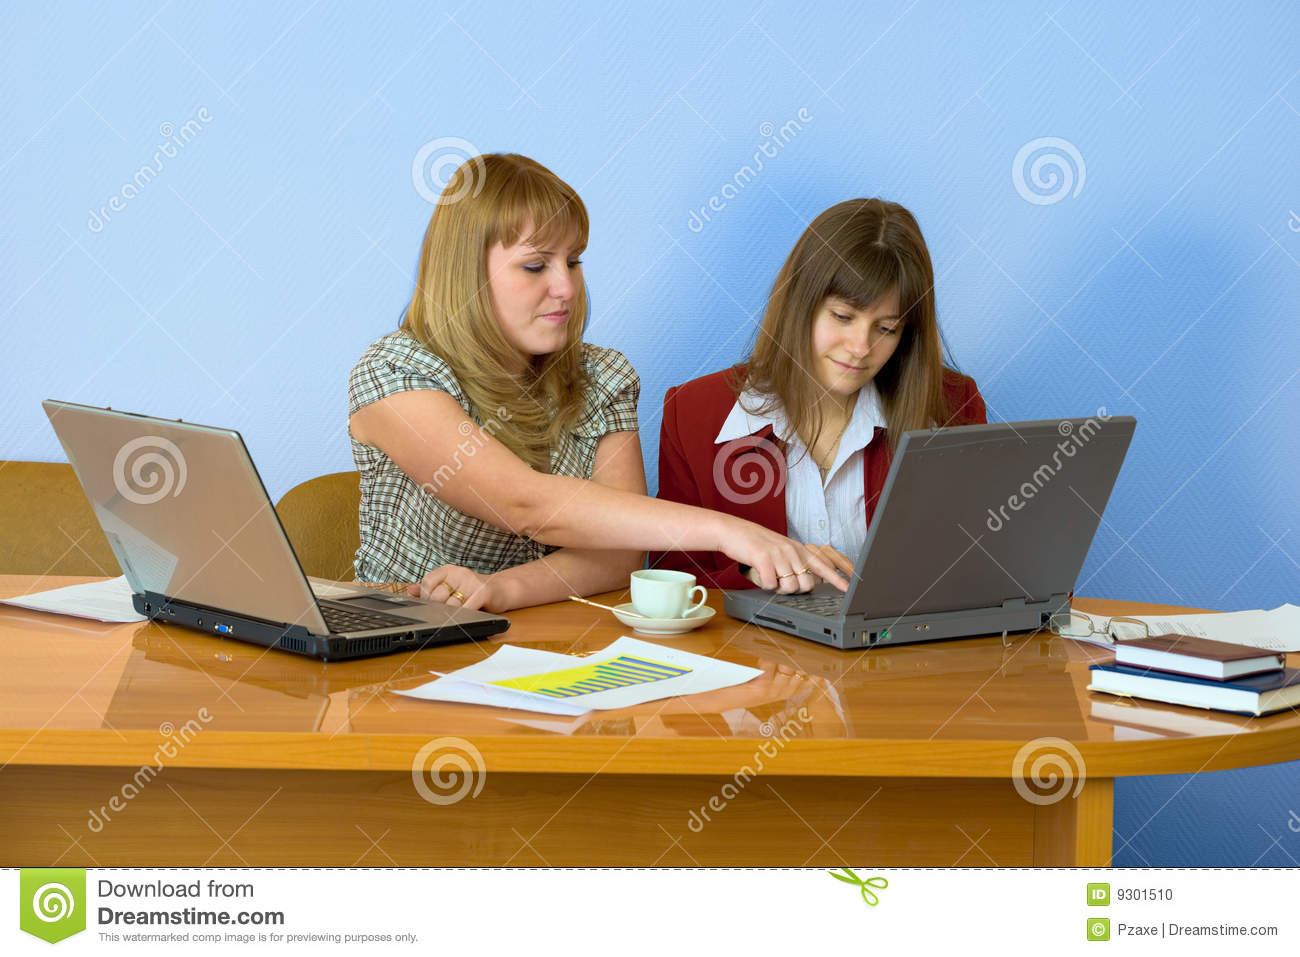 Girls work sitting at a table